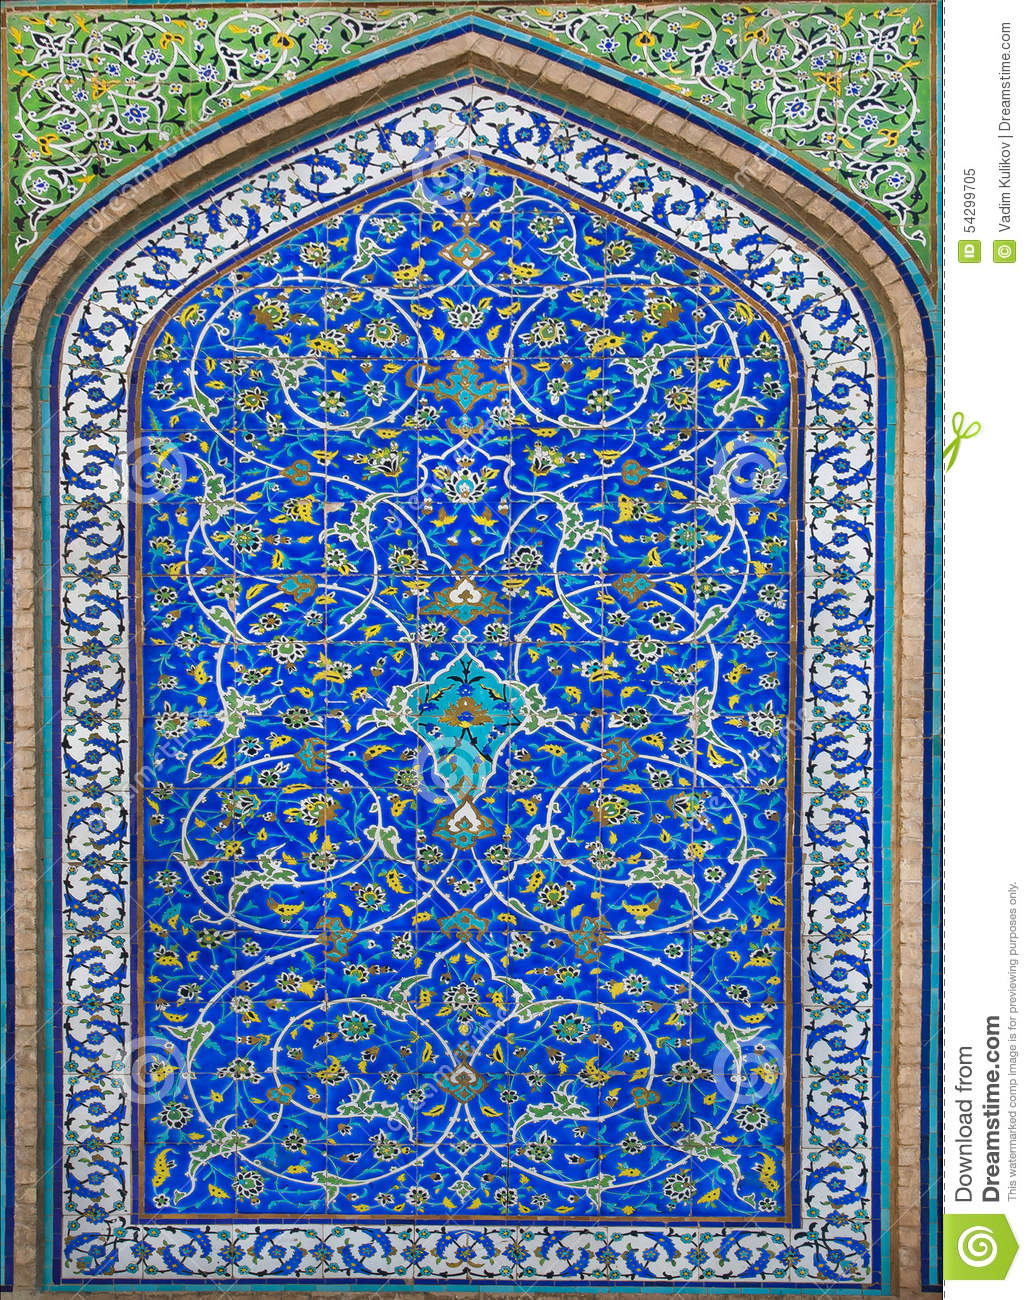 Great Example Of Islamic Culture Tiles With Patterns And